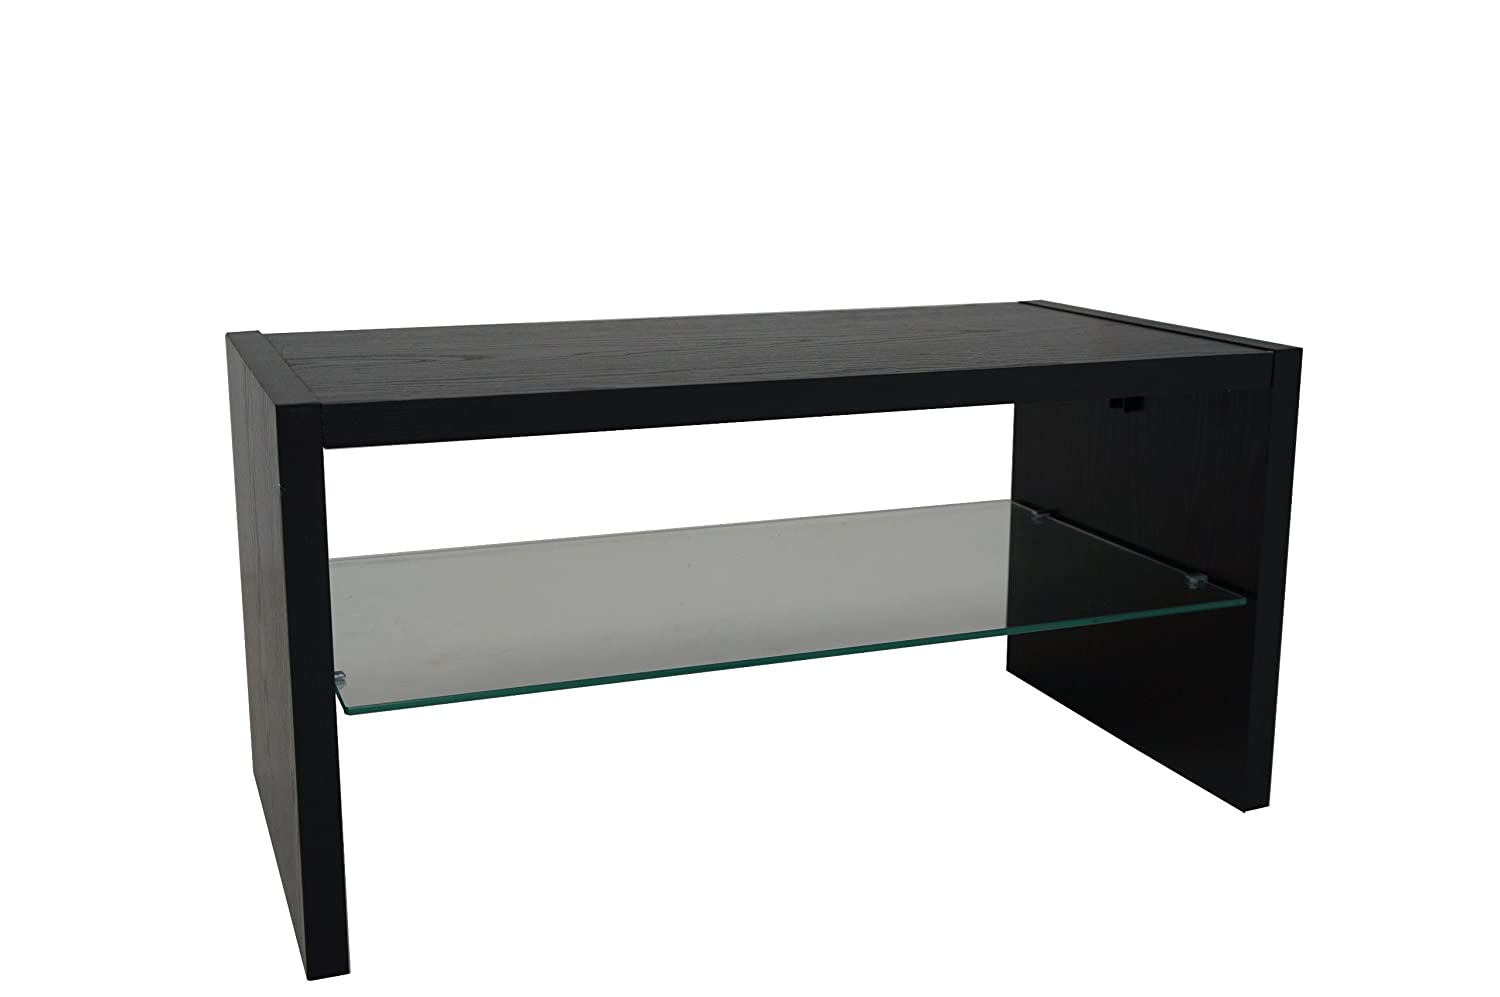 Madison black ash effect coffee table amazon kitchen home geotapseo Image collections